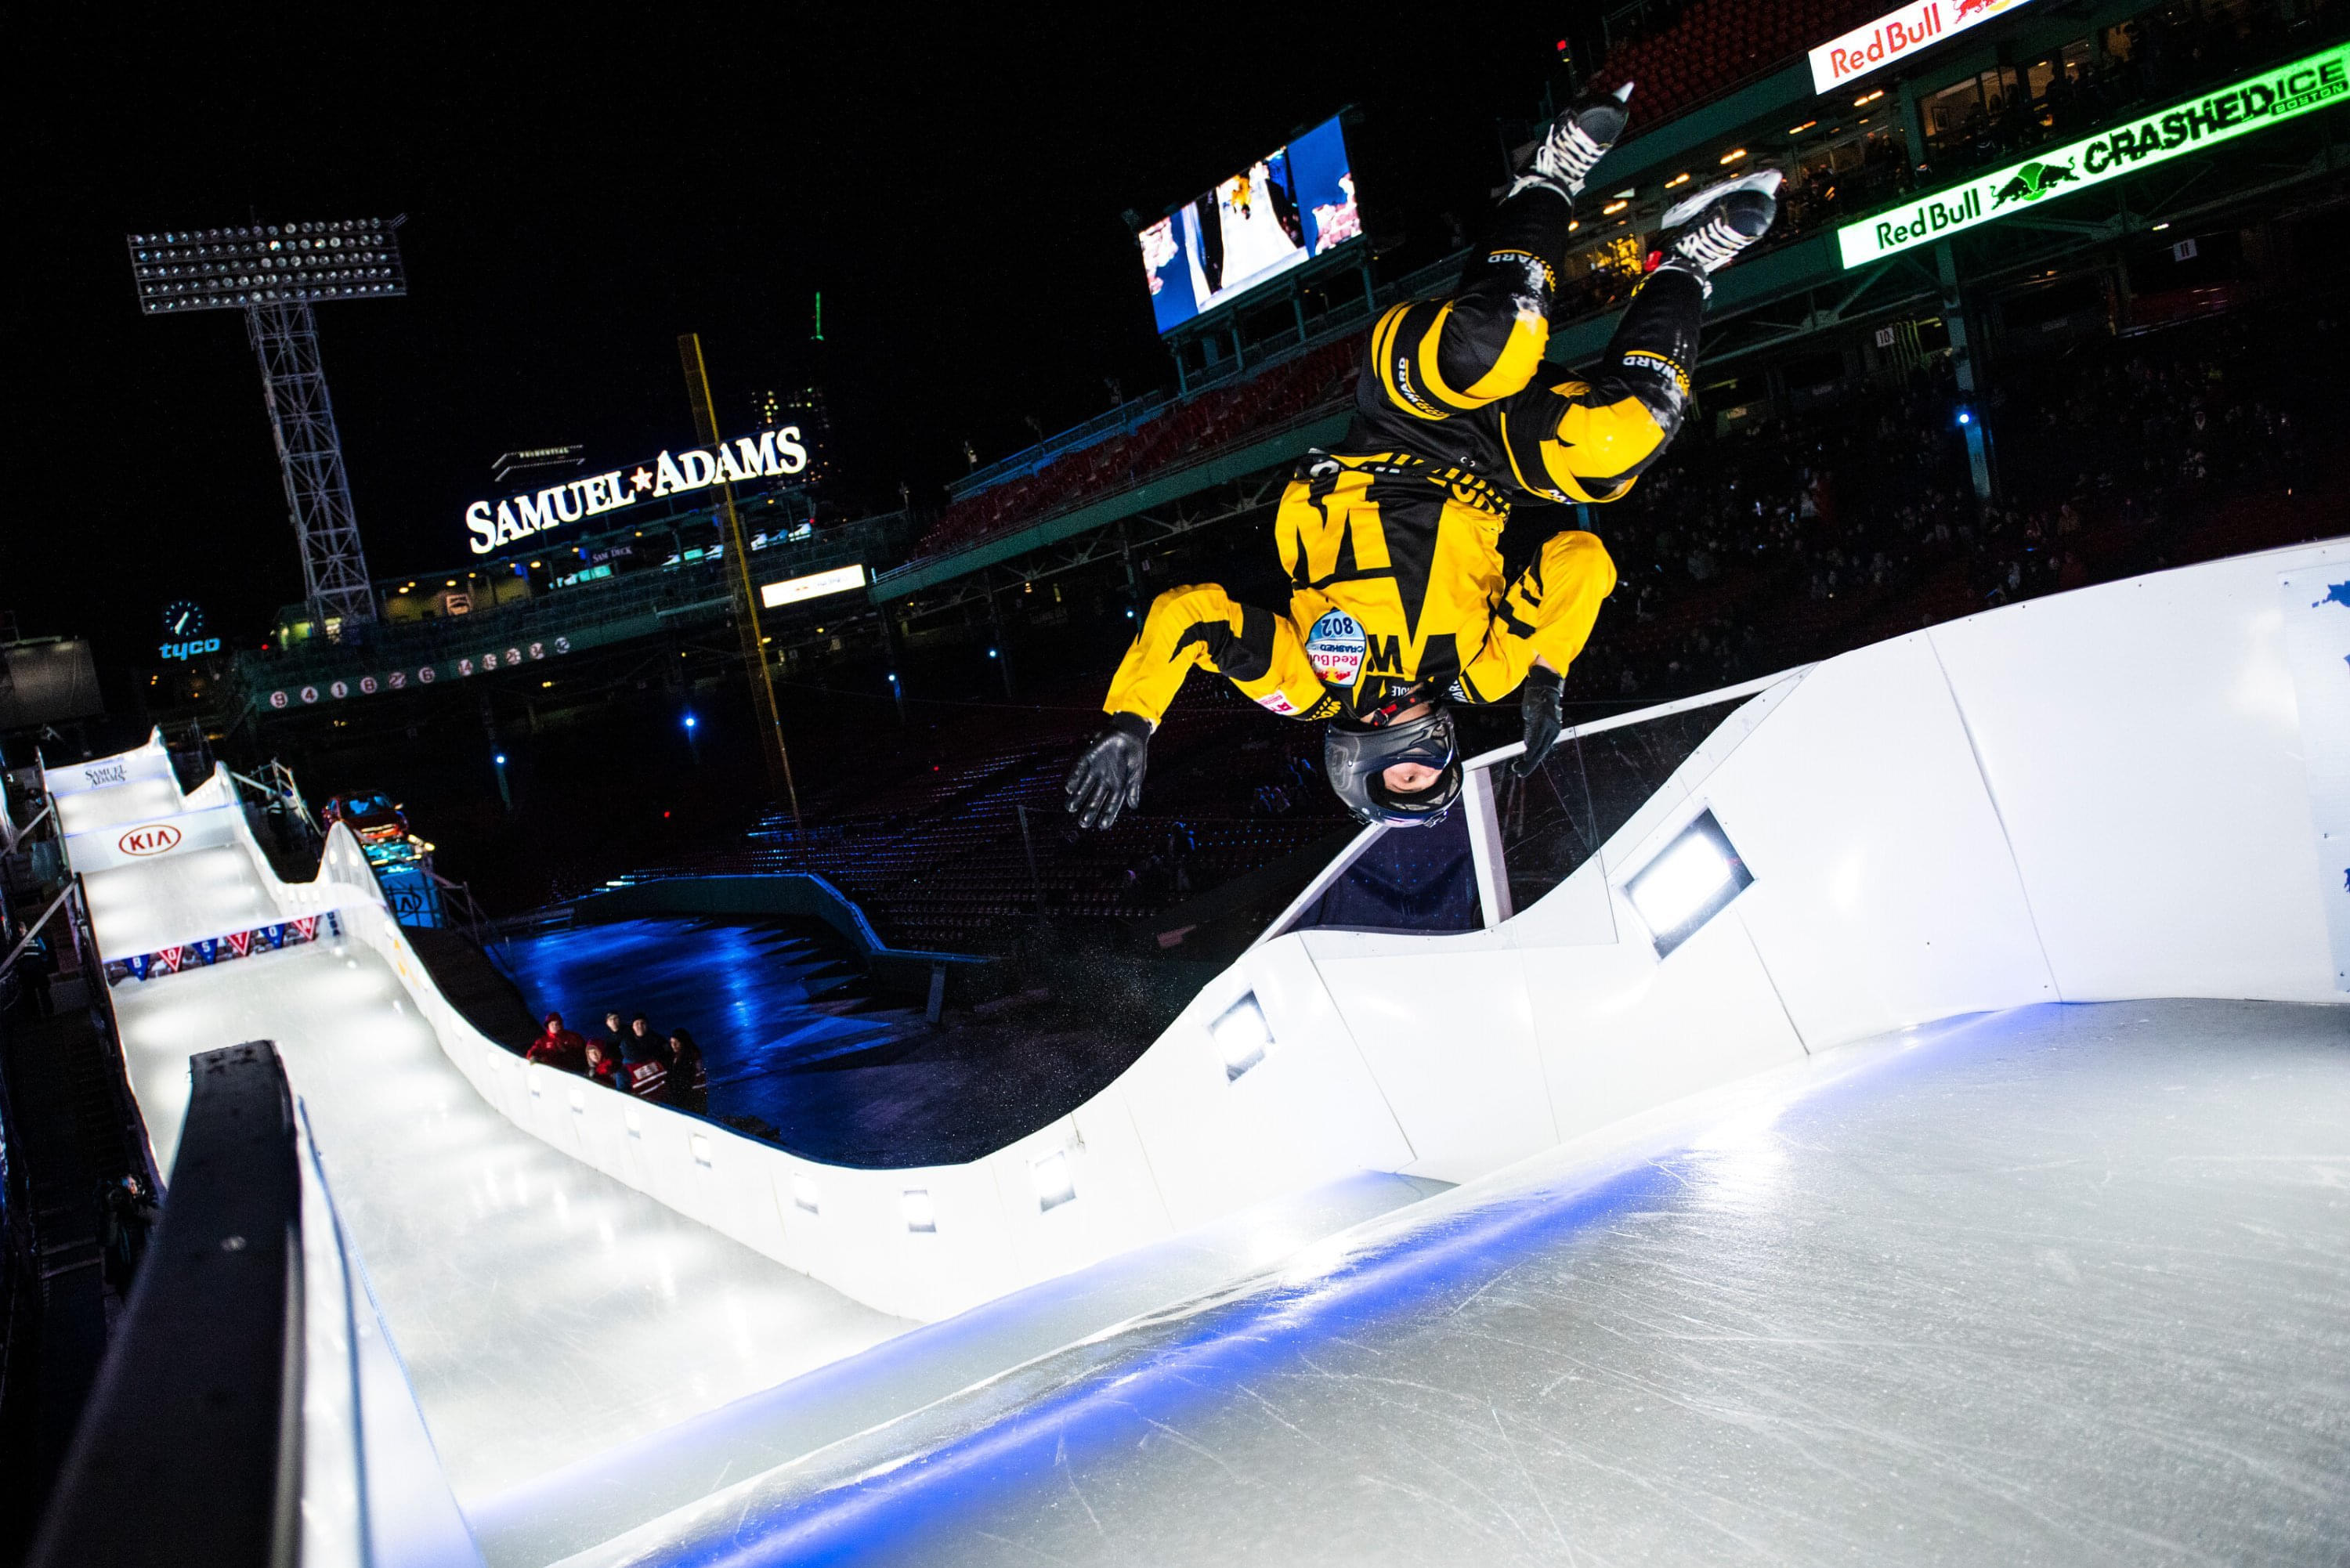 Backflips on ice? No problem Image: Ryan Taylor / Red Bull Content Pool